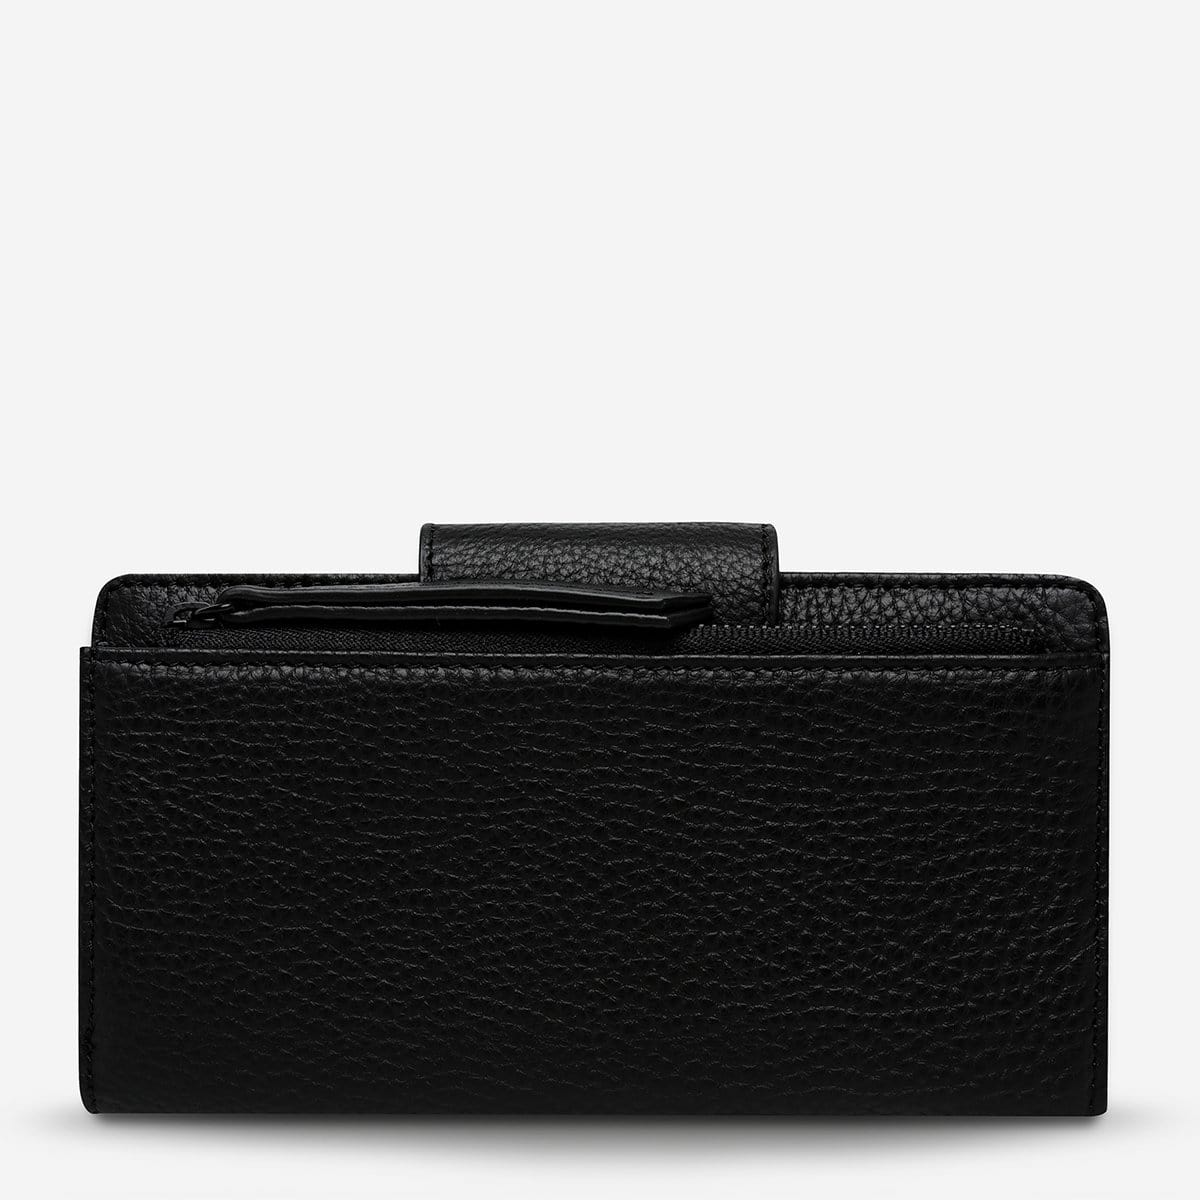 Status Anxiety Bags Status Anxiety | Ruins Wallet - Black